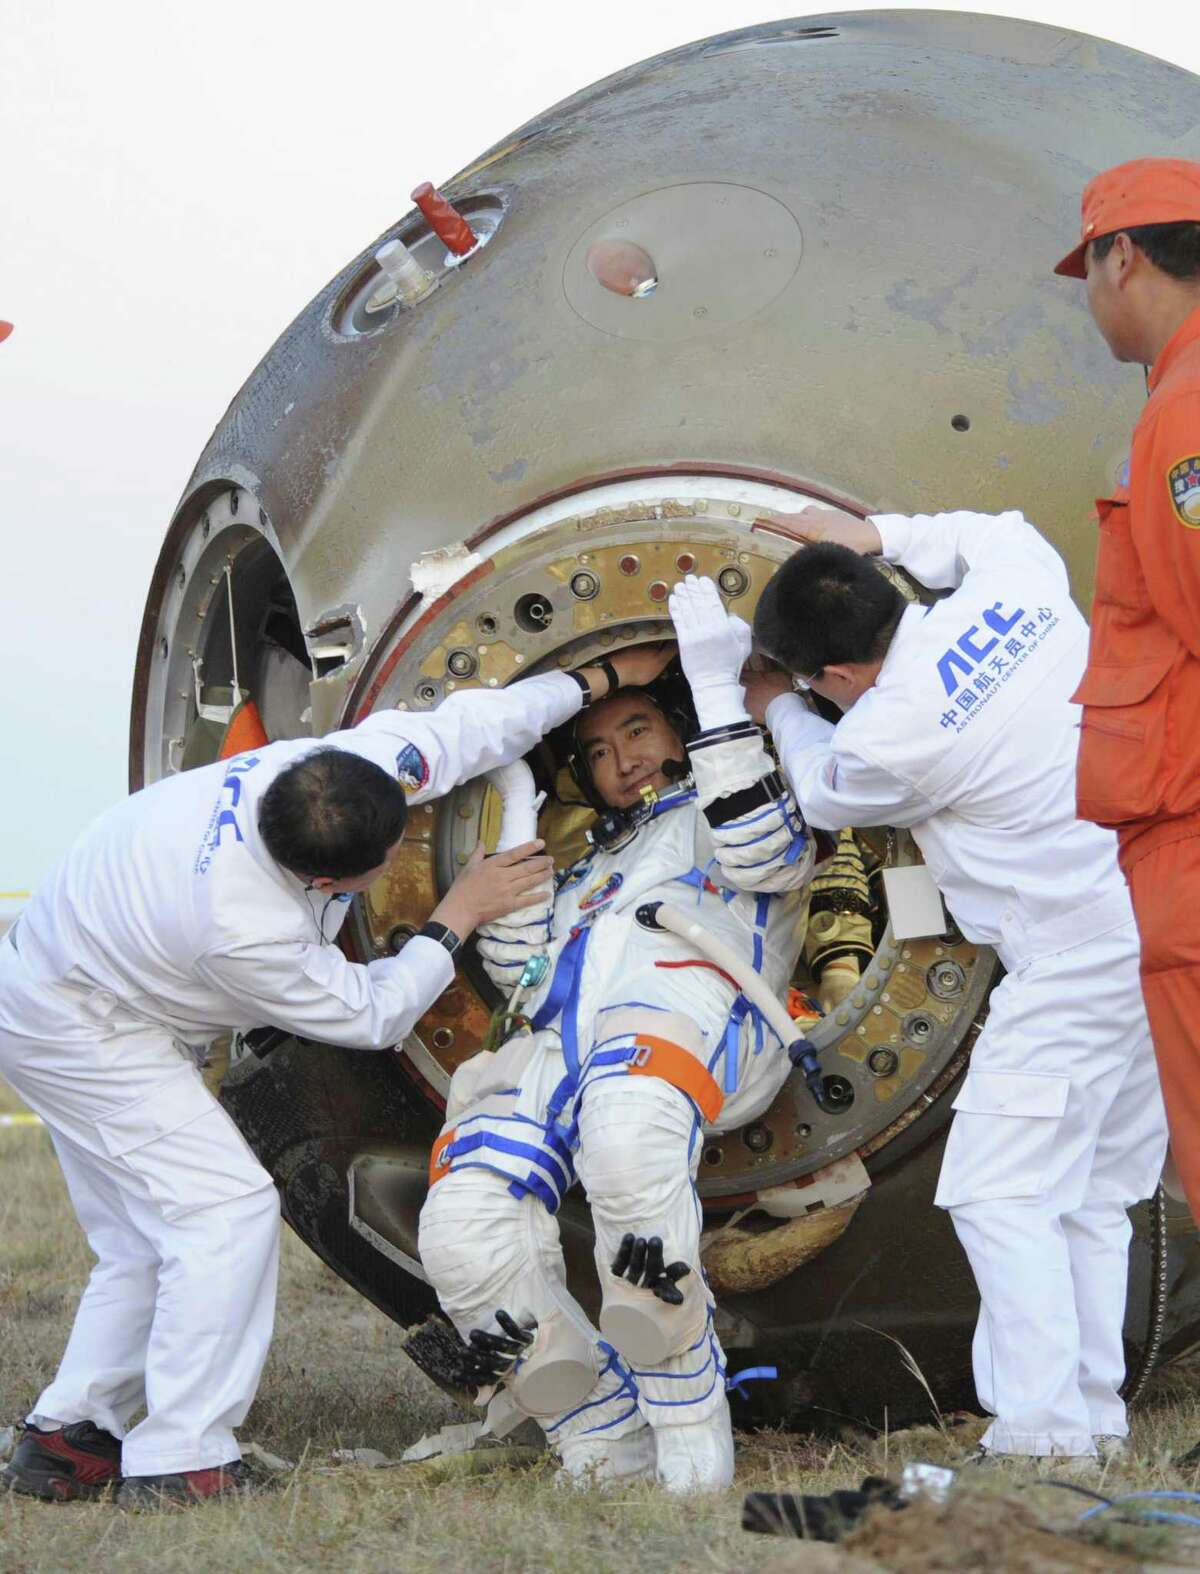 In this photo released by China's Xinhua News Agency, Chinese taikonaut Zhai Zhigang is helped to get out of the Shenzhou-7 re-entry module after its safe landing in Siziwang Banner in North China's Inner Mongolia Autonomous Region on Sept. 28, 2008. Zhai conducted the country's first-ever spacewalk in the mission.